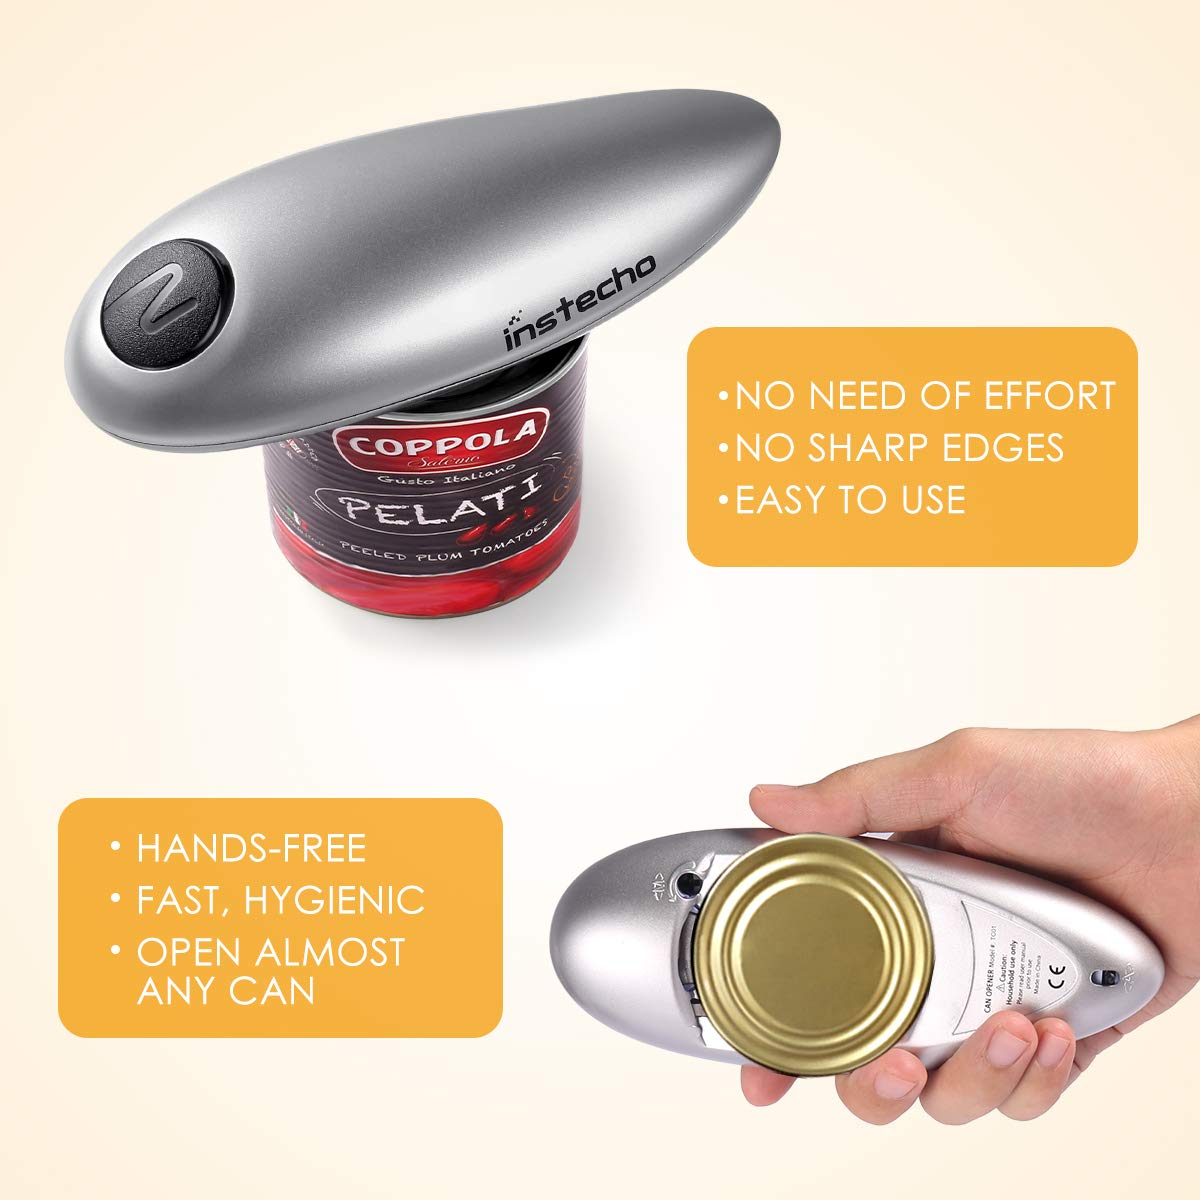 Electric Can Opener, Smooth Edge Automatic Can Opener for Any Size, Best Kitchen Gadget for Arthritis and Seniors (GrayClassic1) by instecho (Image #4)